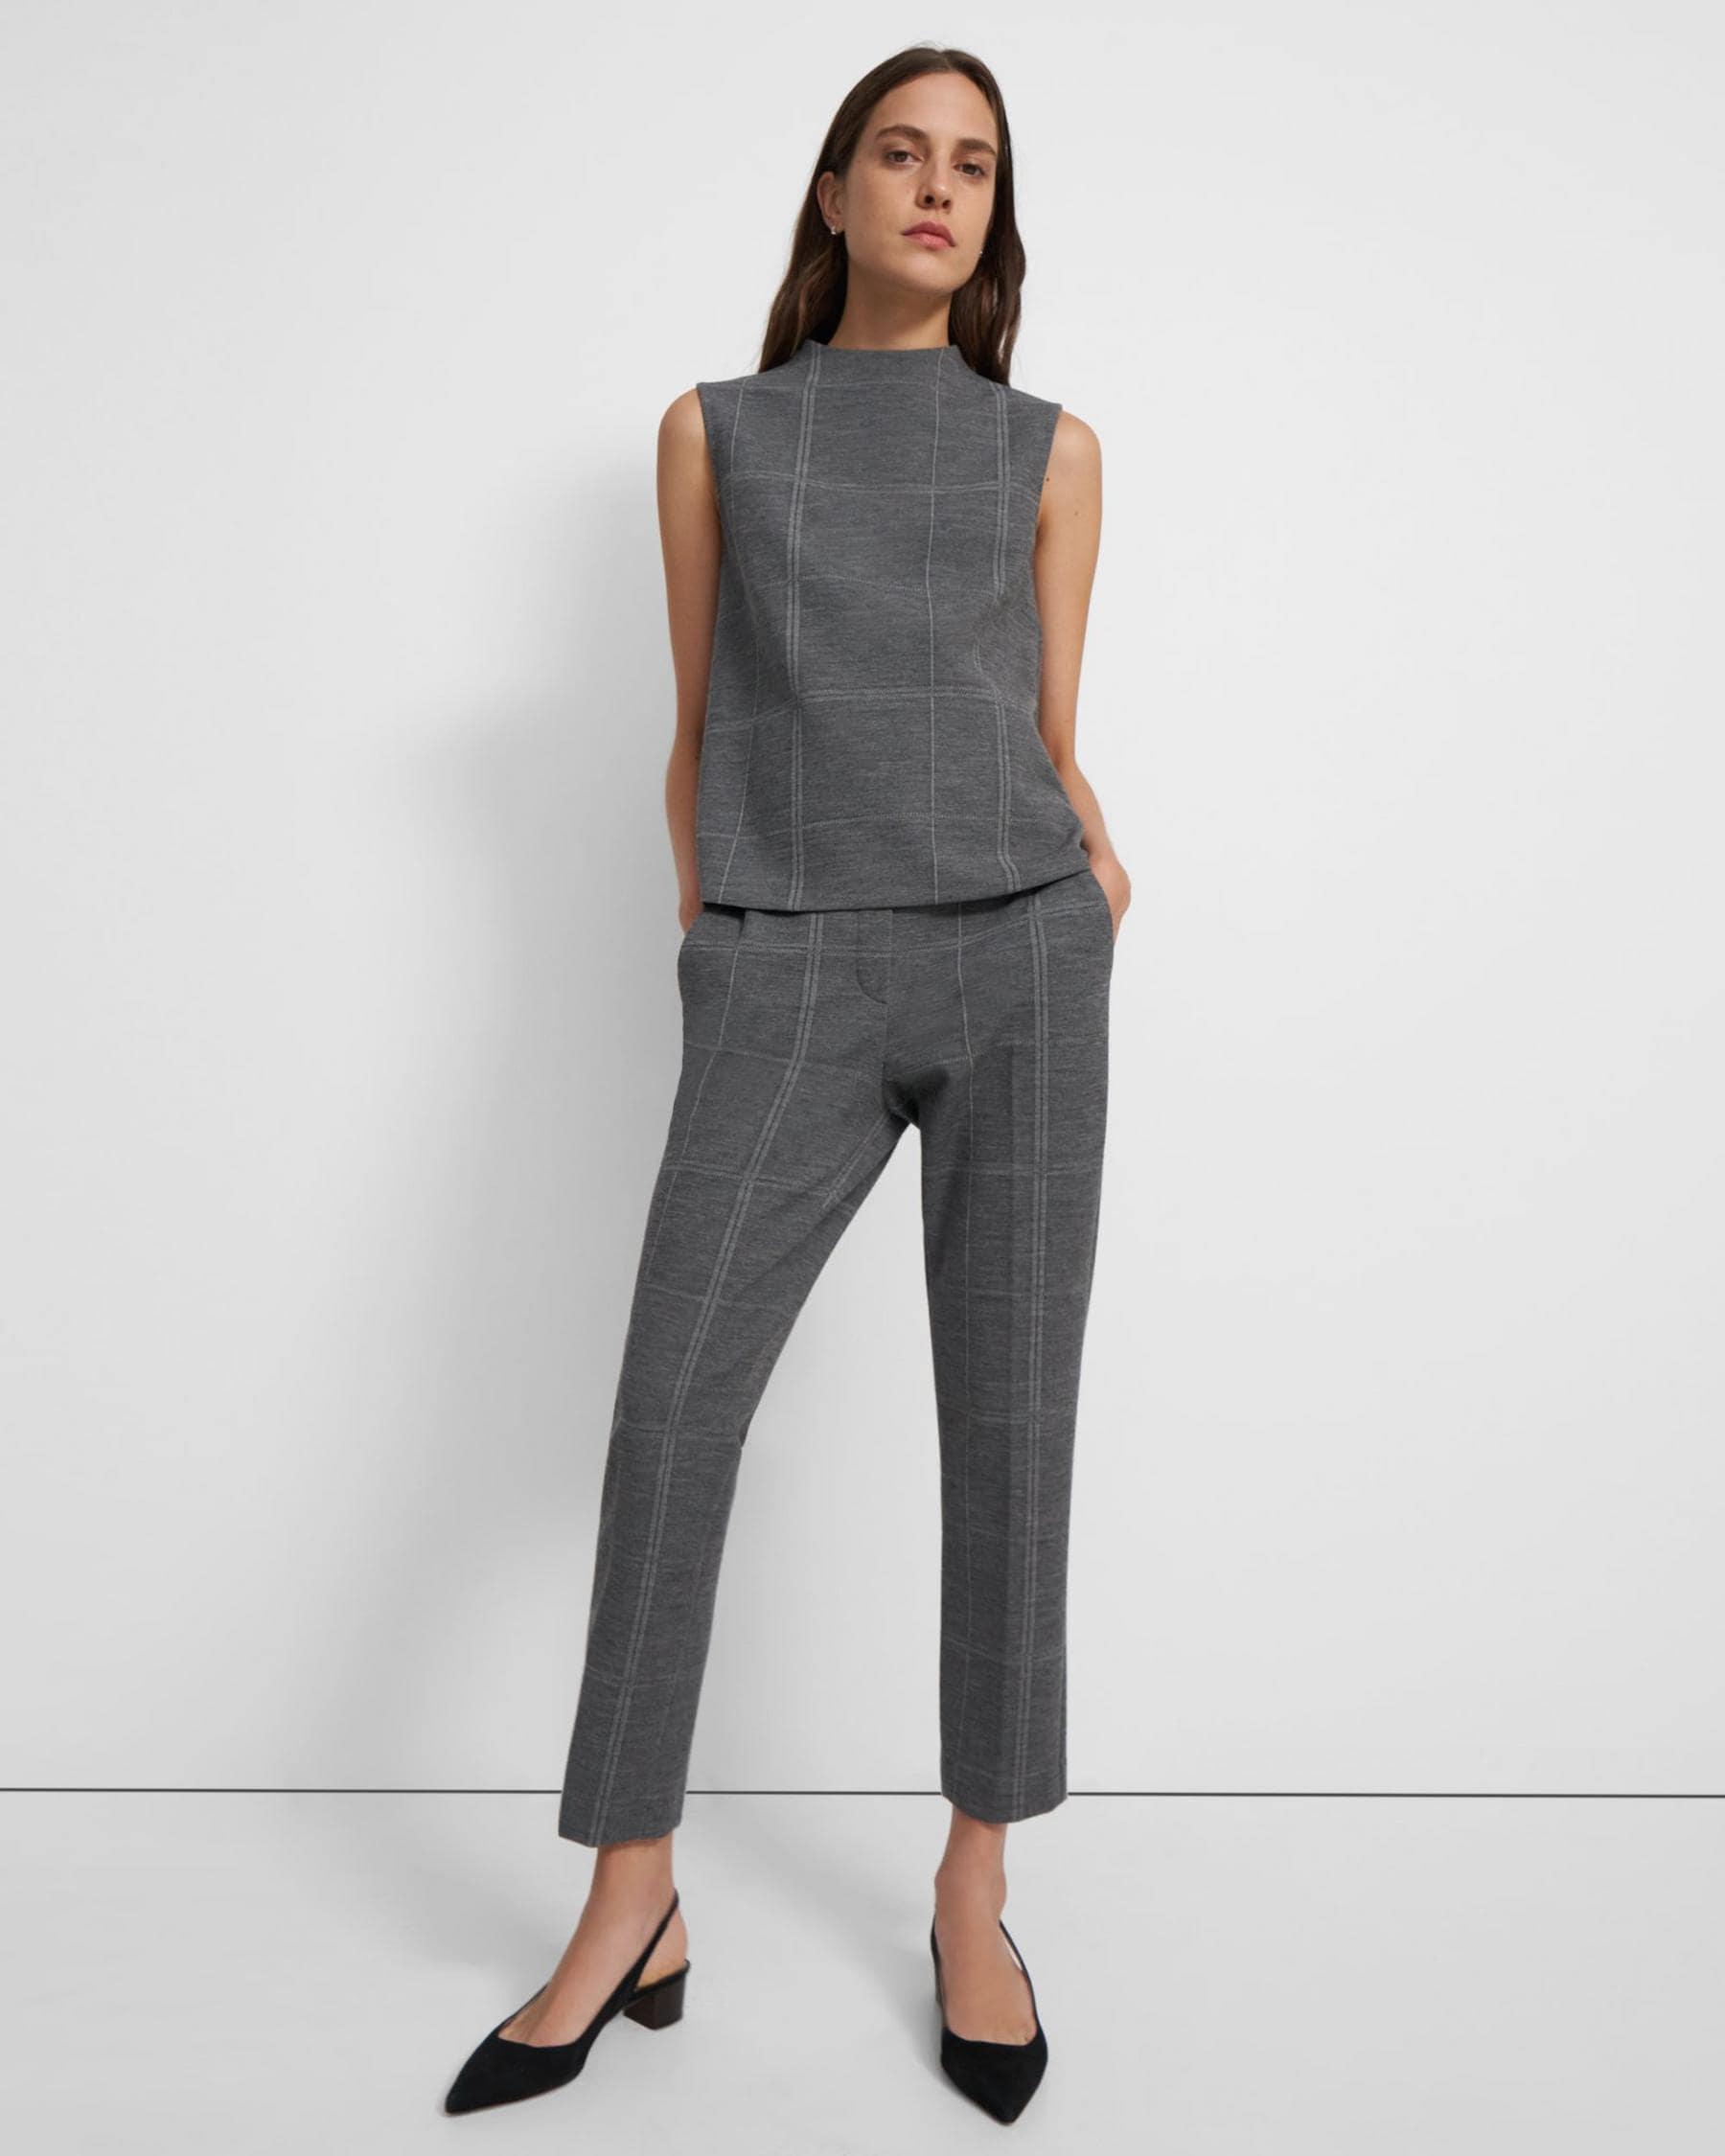 Sleeveless Volume Top in Checked Eco Knit